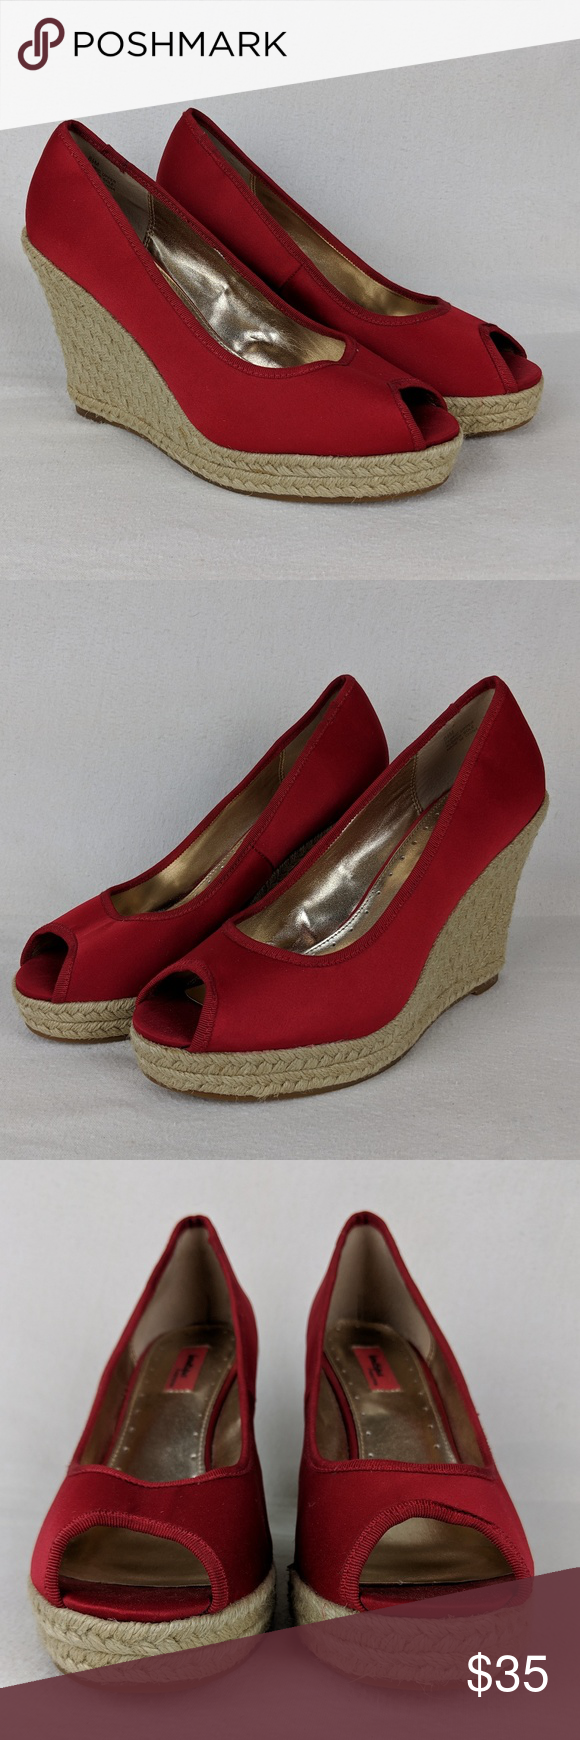 Shoes Size 8.5 M Red Boutique Nordstrom